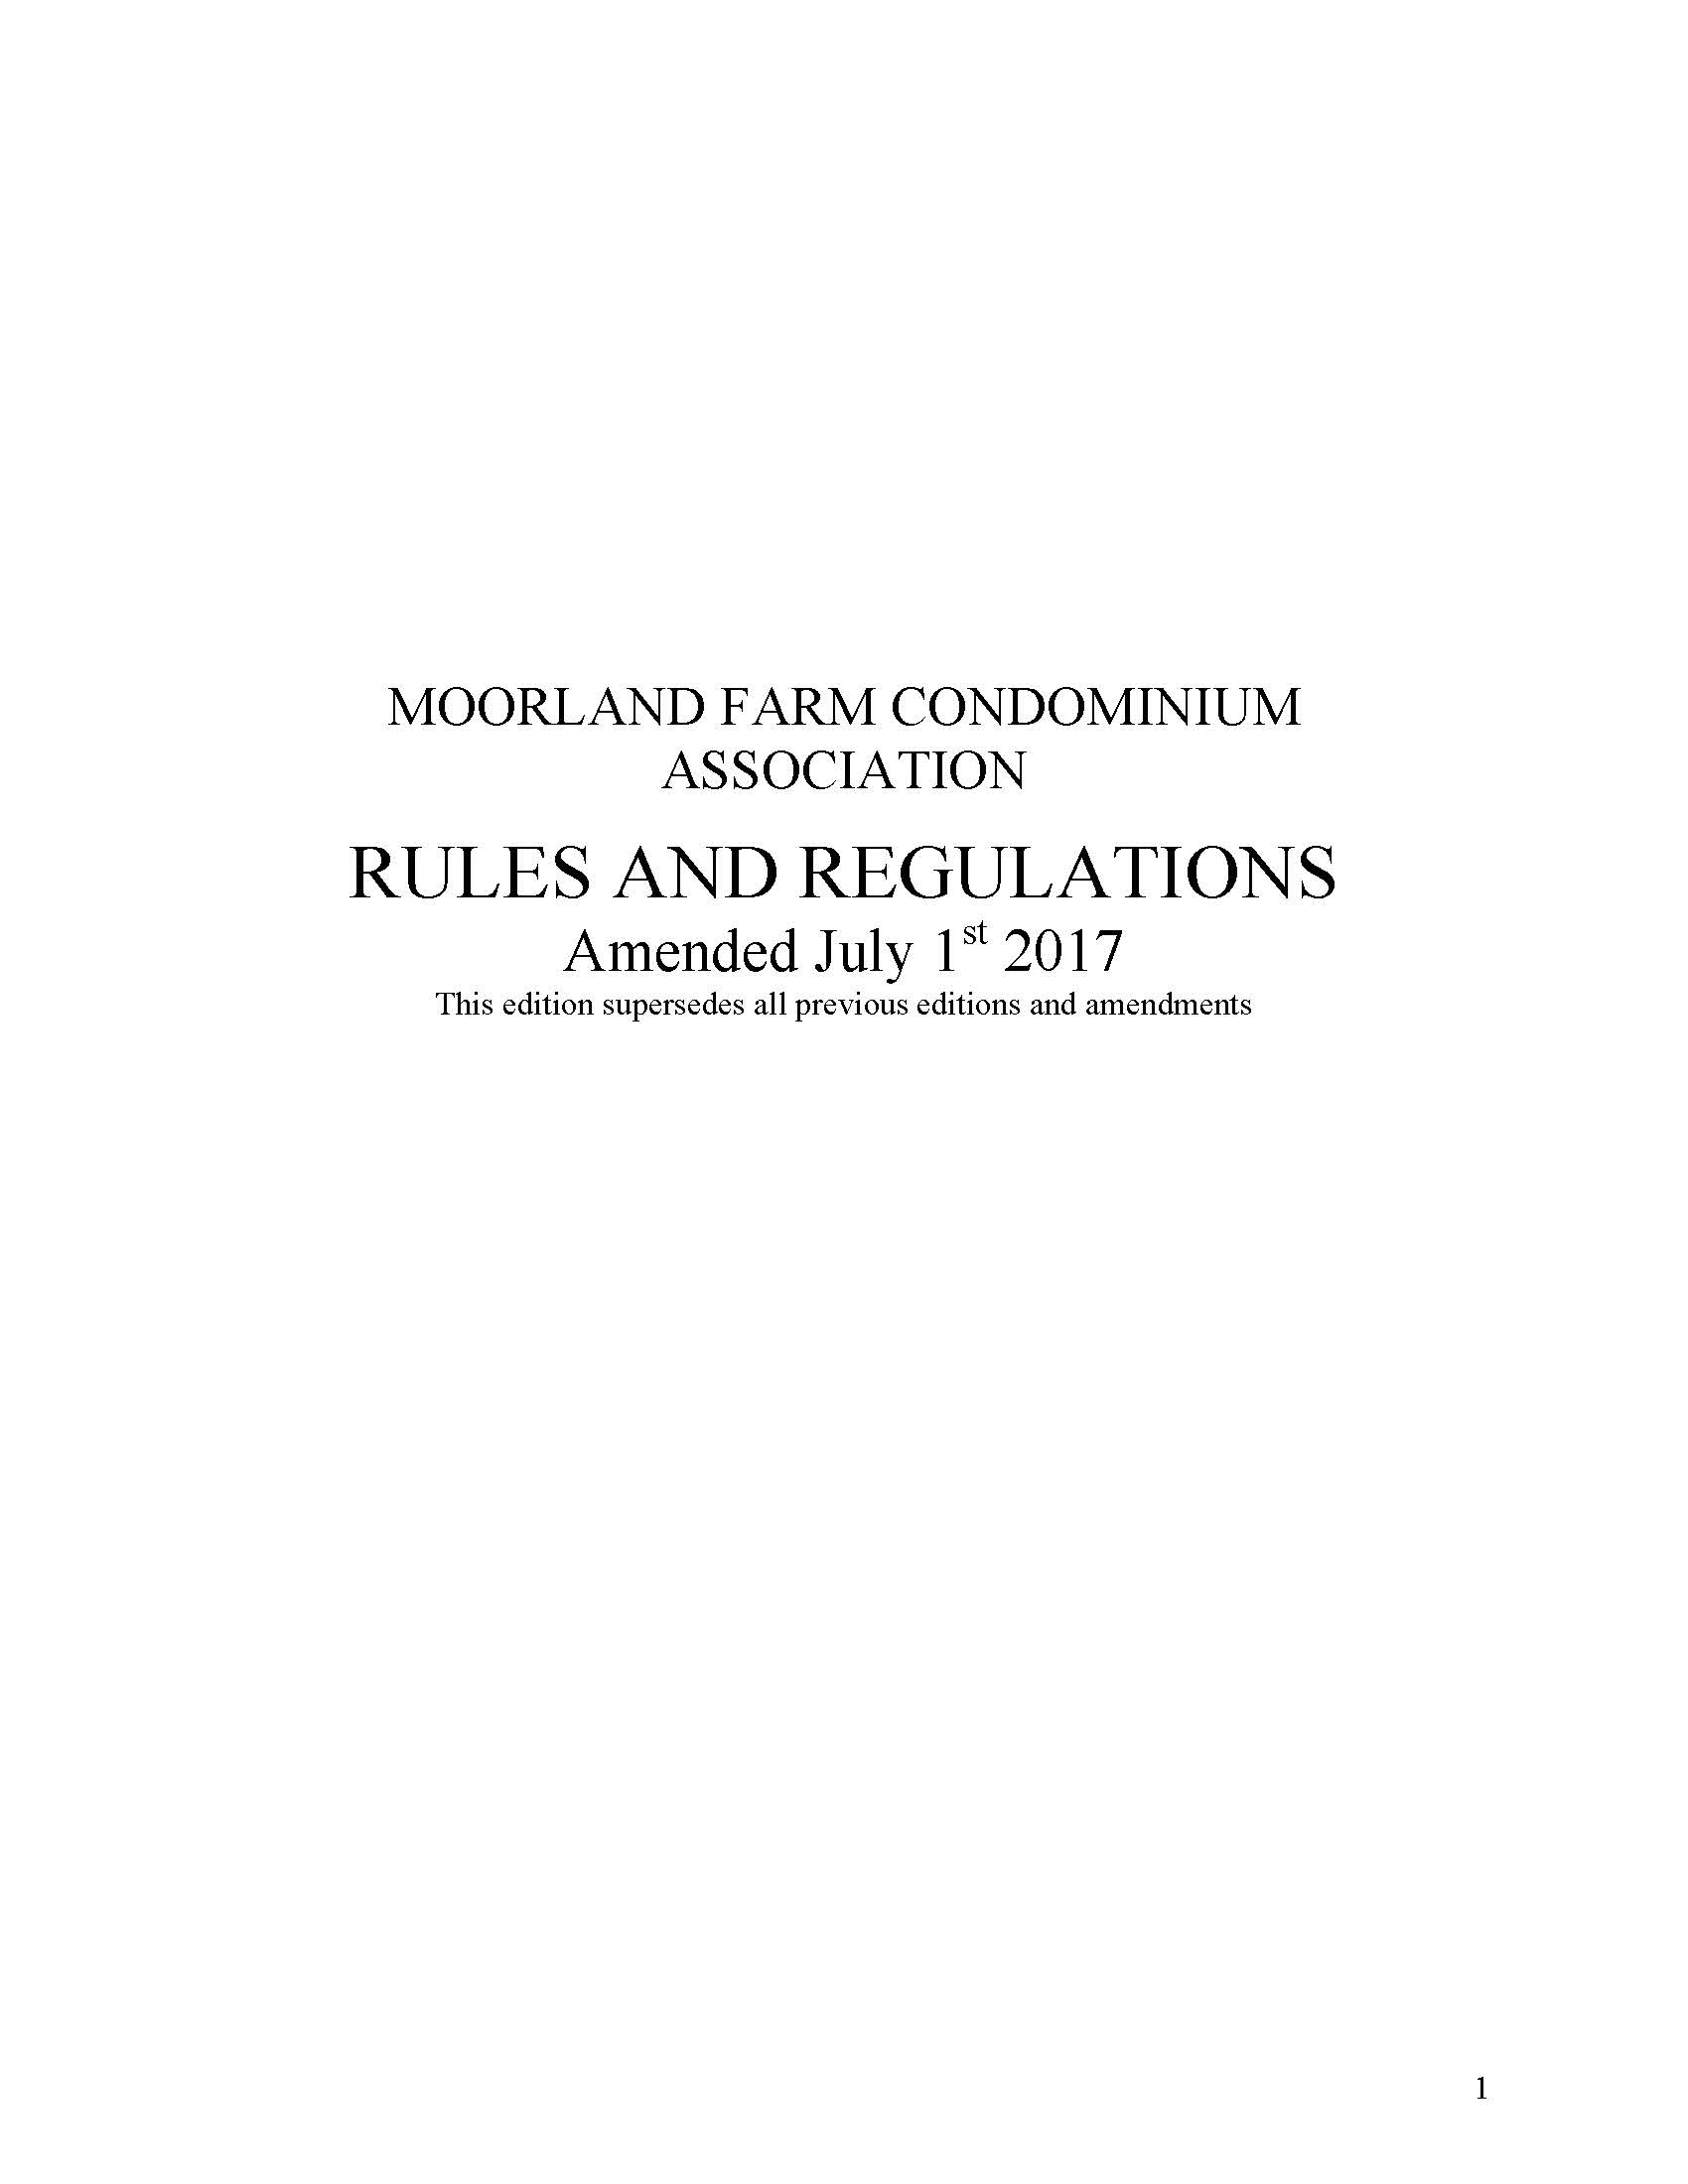 MFCA-Rules-and-Regs-1